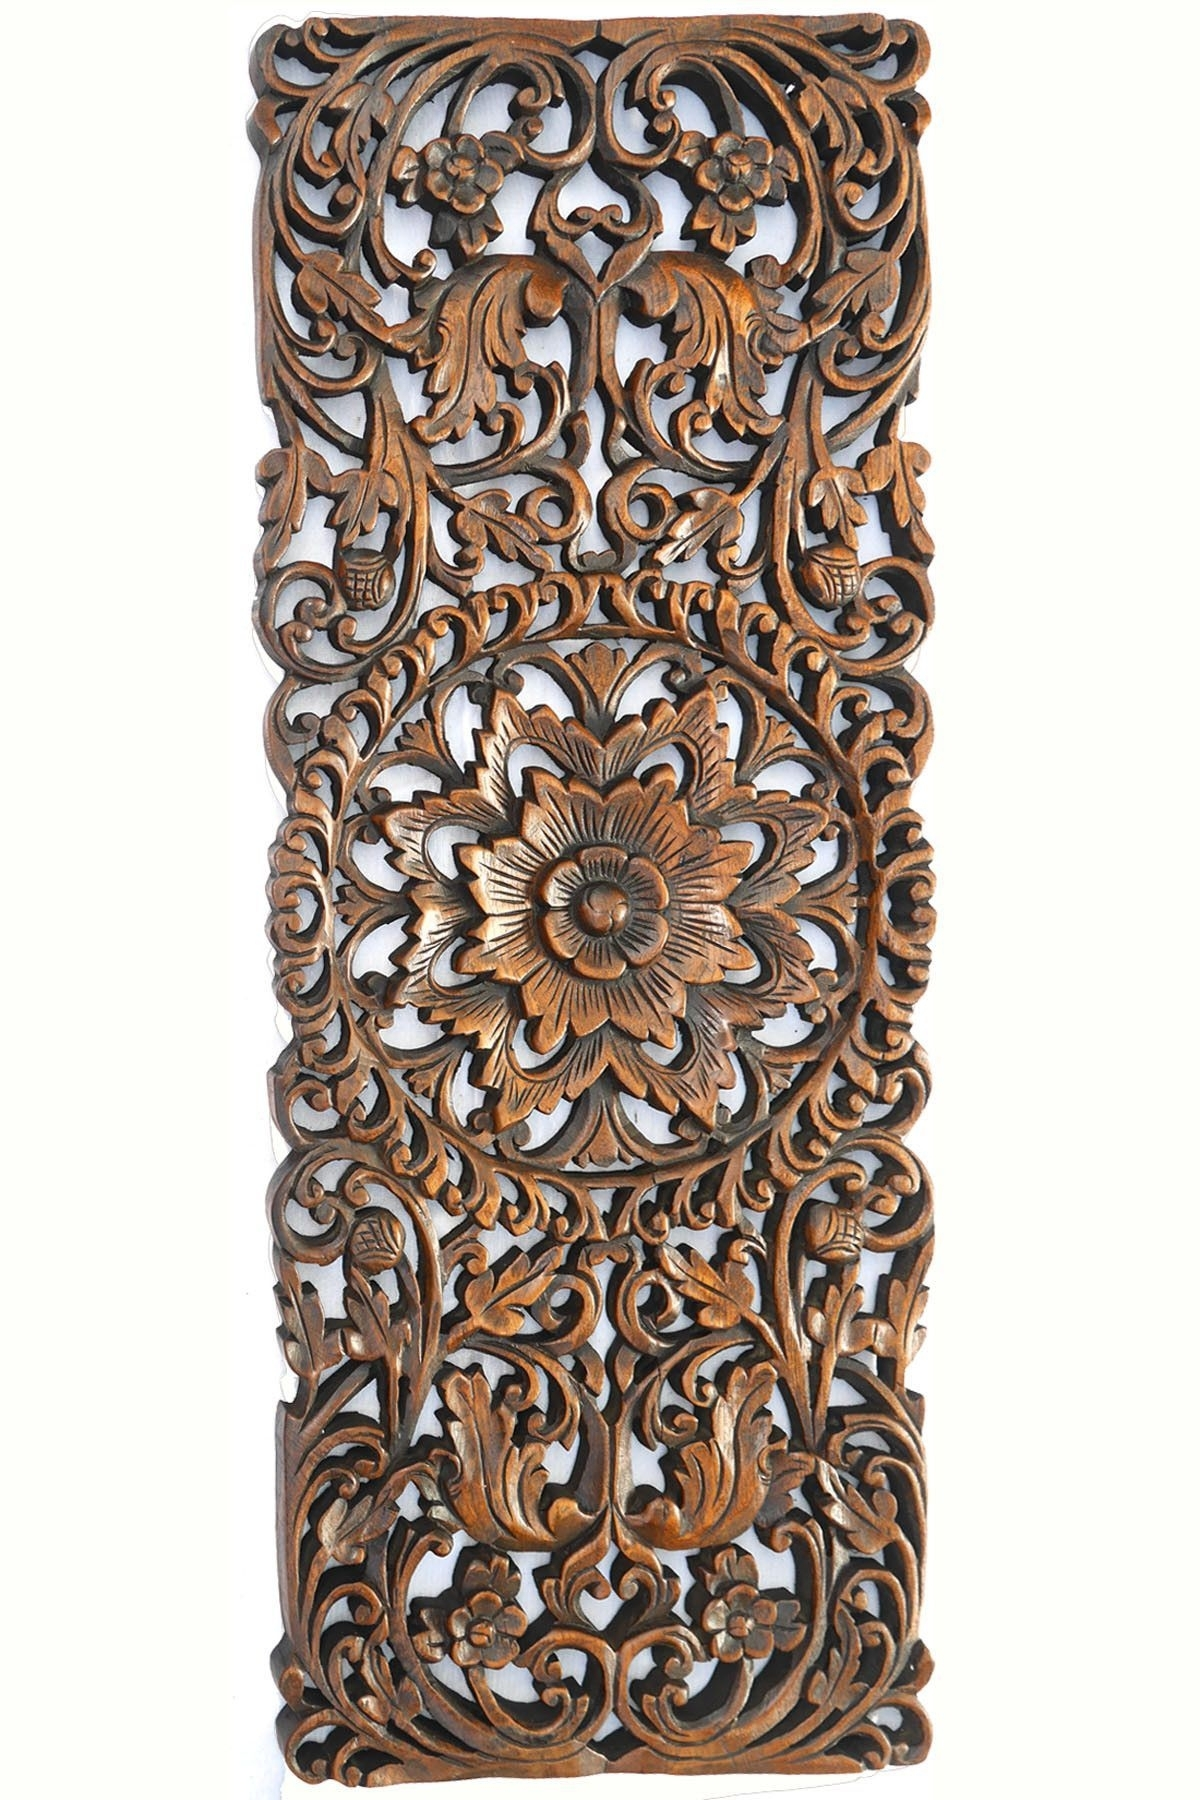 Floral Tropical Carved Wood Wall Panel. Asian Wall Art Home Decor inside Carved Wood Wall Art (Image 11 of 20)